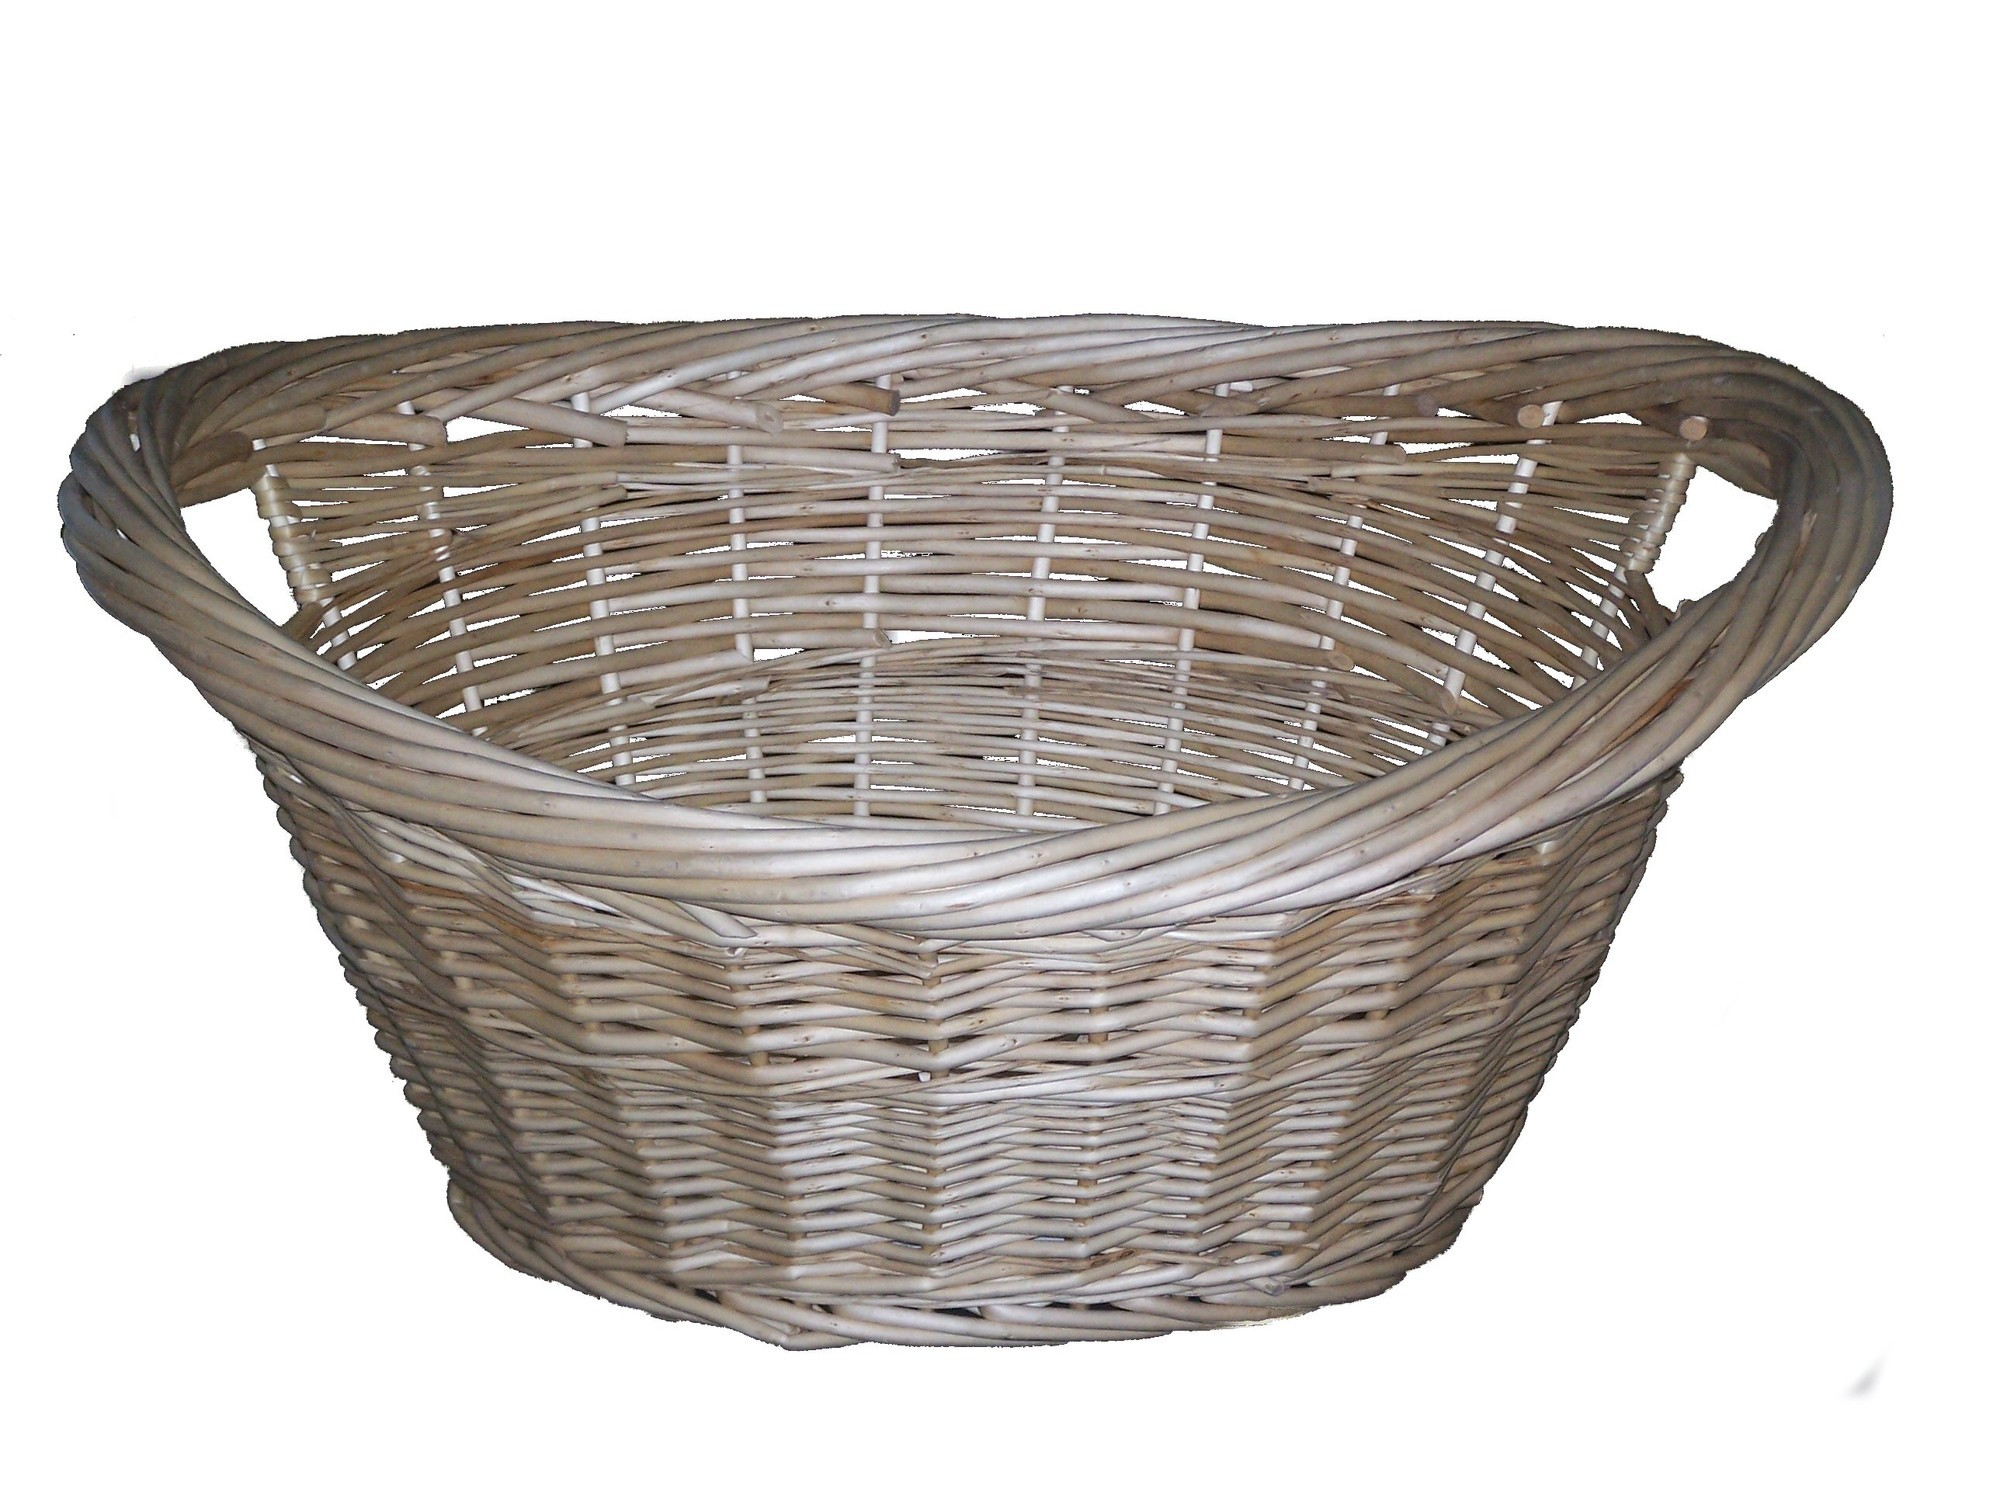 Cane Design Willow Washing Basket Reviews Temple Webster